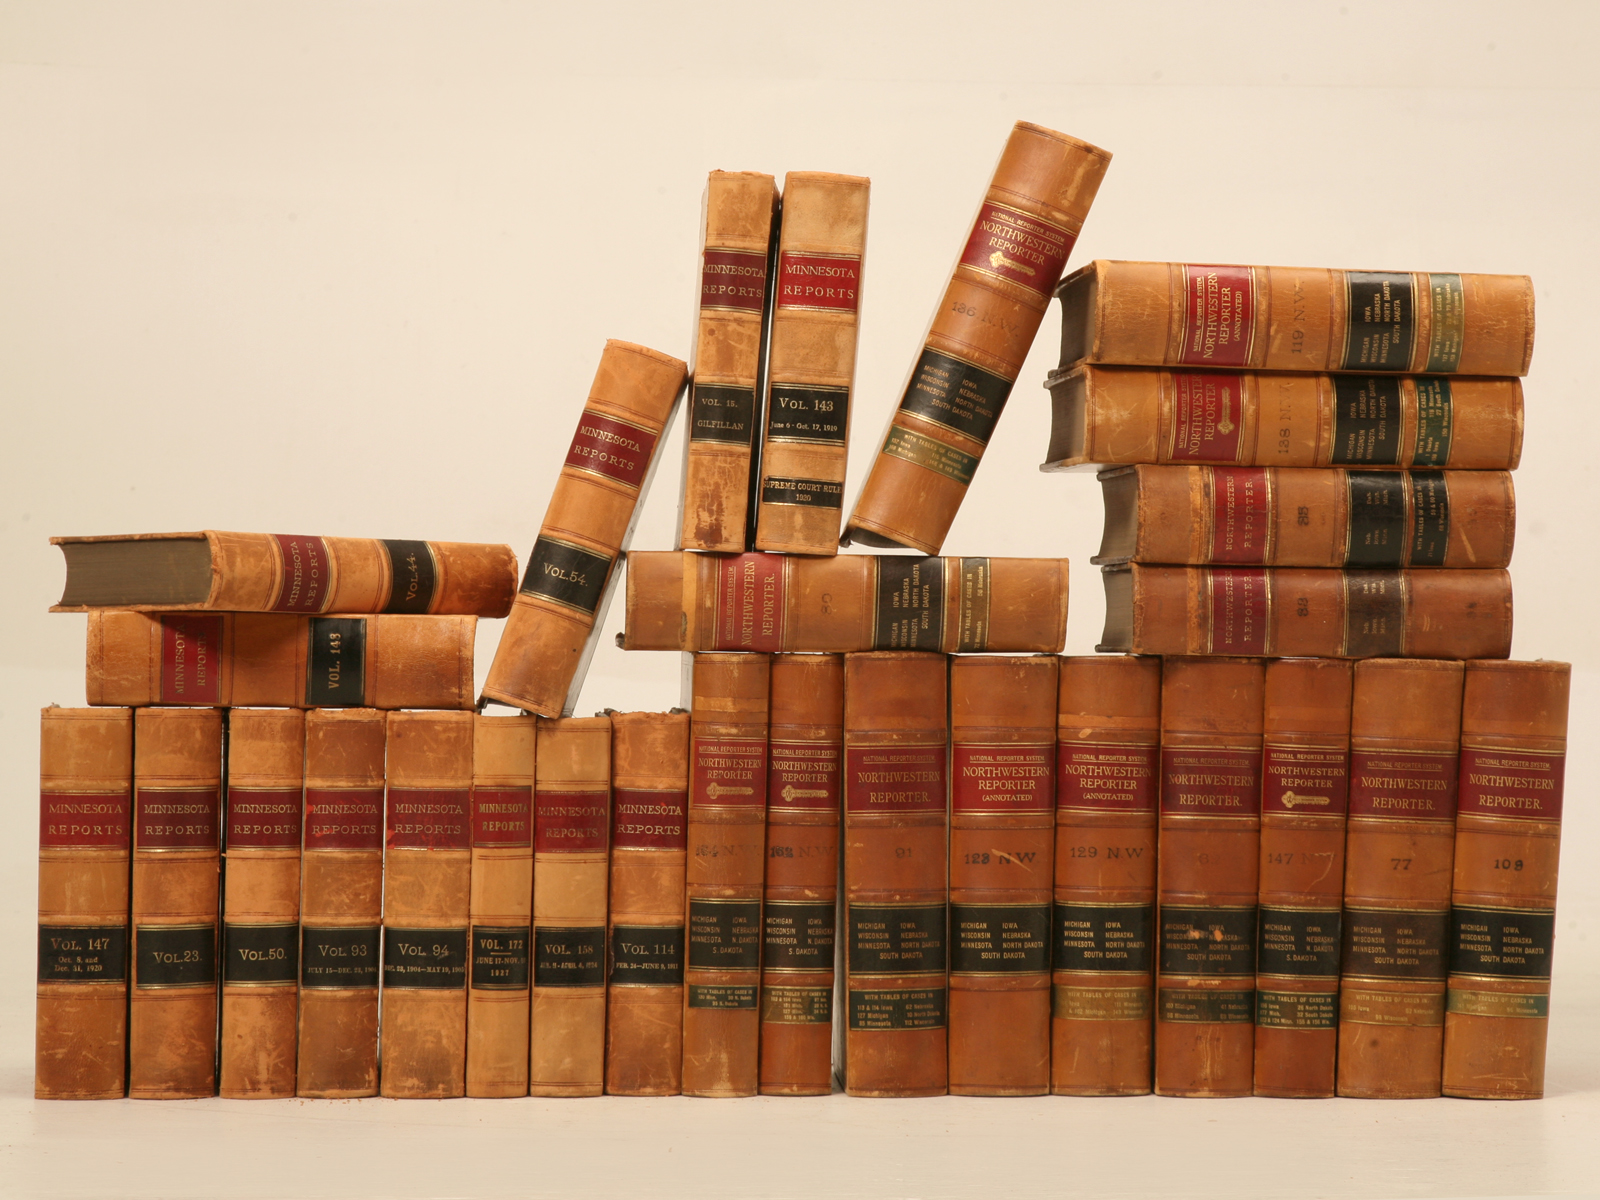 books on shell, download background, Books on a shelf texture background, books